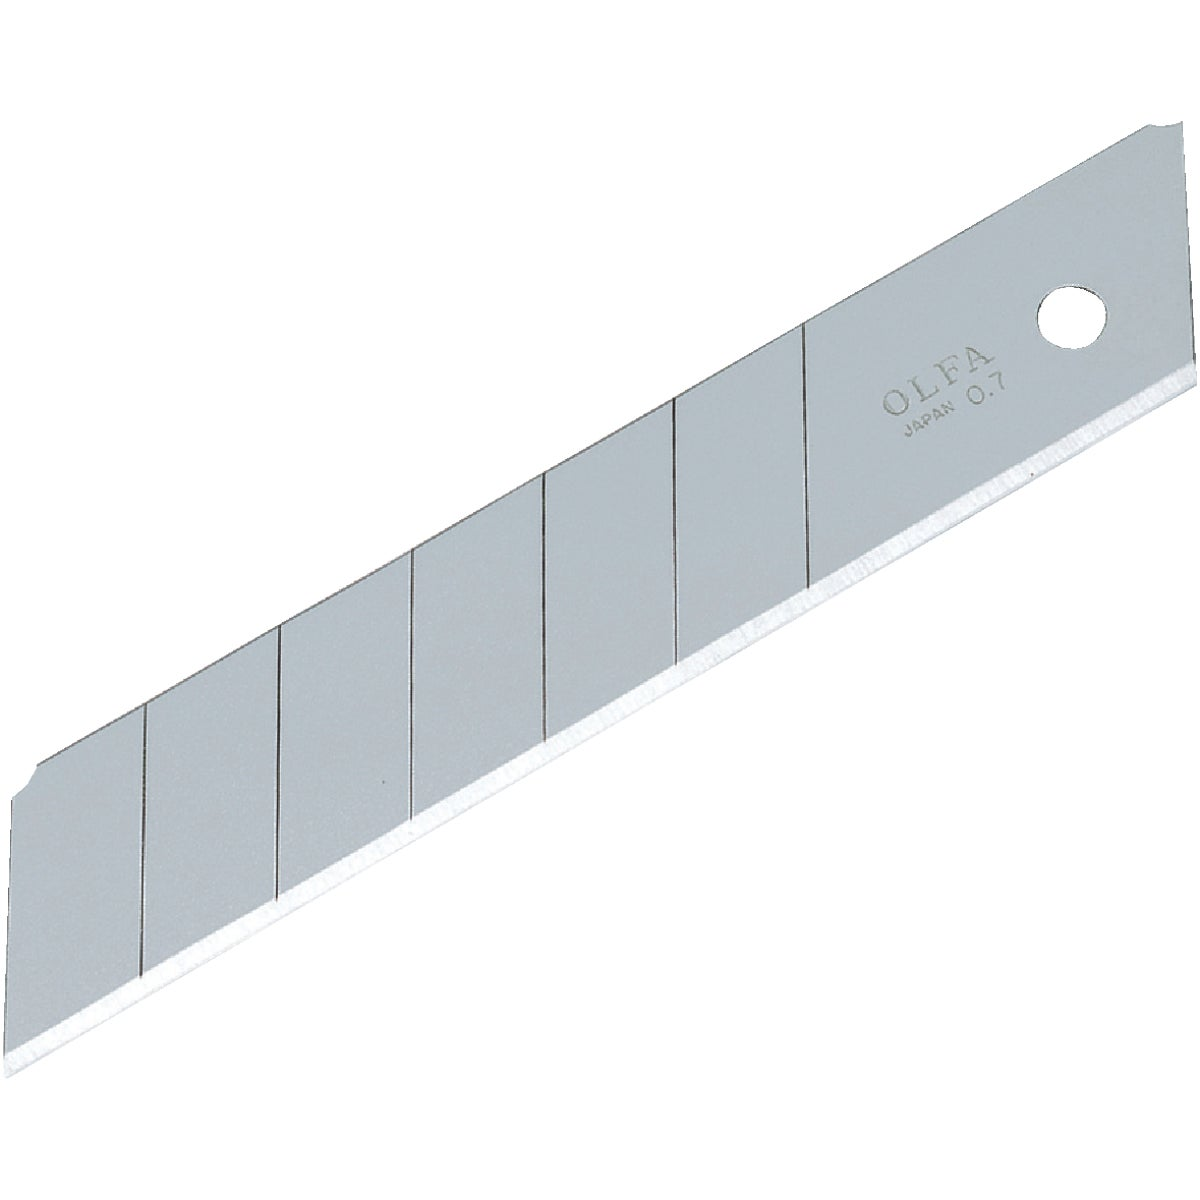 5PK 25MM SNAP-OFF BLADE - 5008 by Olfa  Incom